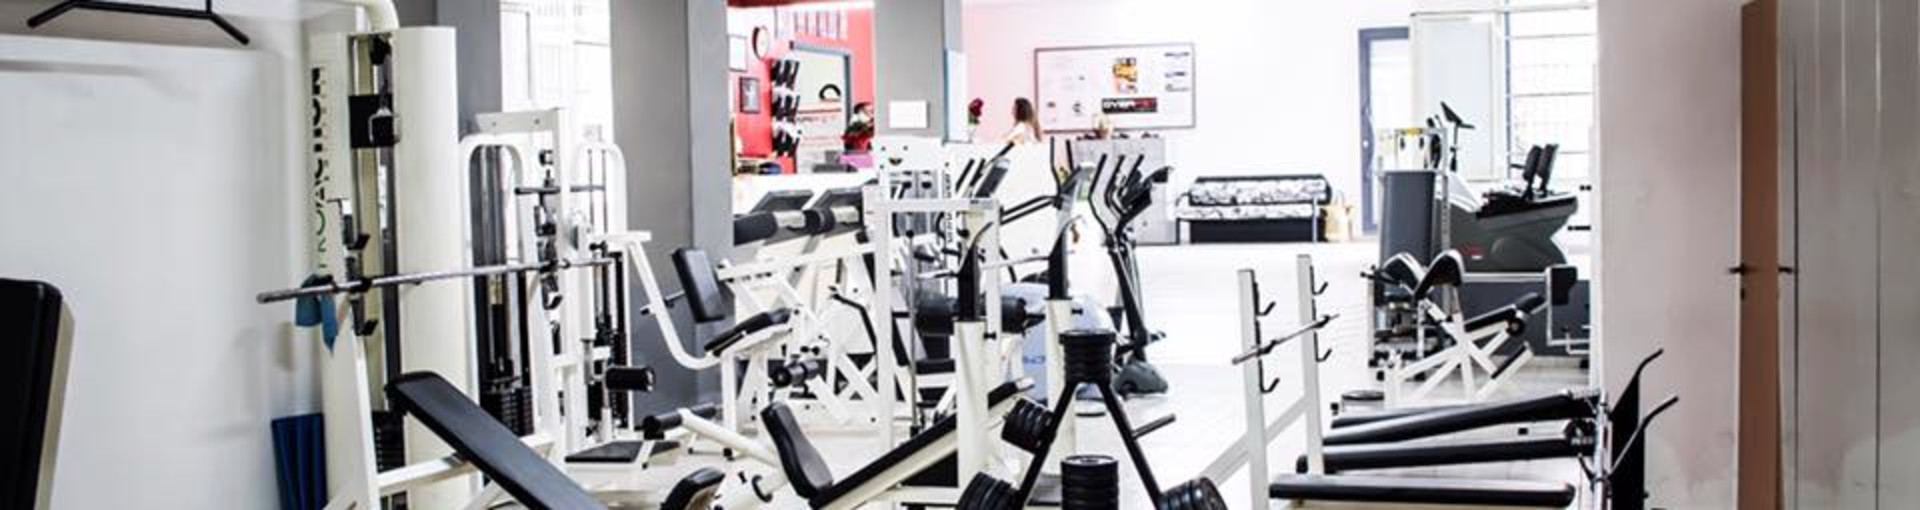 Over Fit Fitness Center - Catania